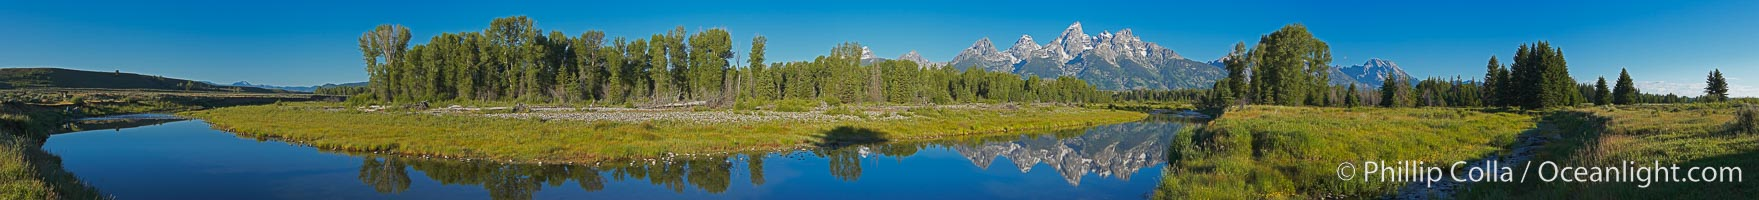 Panorama of the Teton Range reflected in the still waters of Schwabacher Landing, a sidewater of the Snake River.,  Copyright Phillip Colla, image #19129, all rights reserved worldwide.